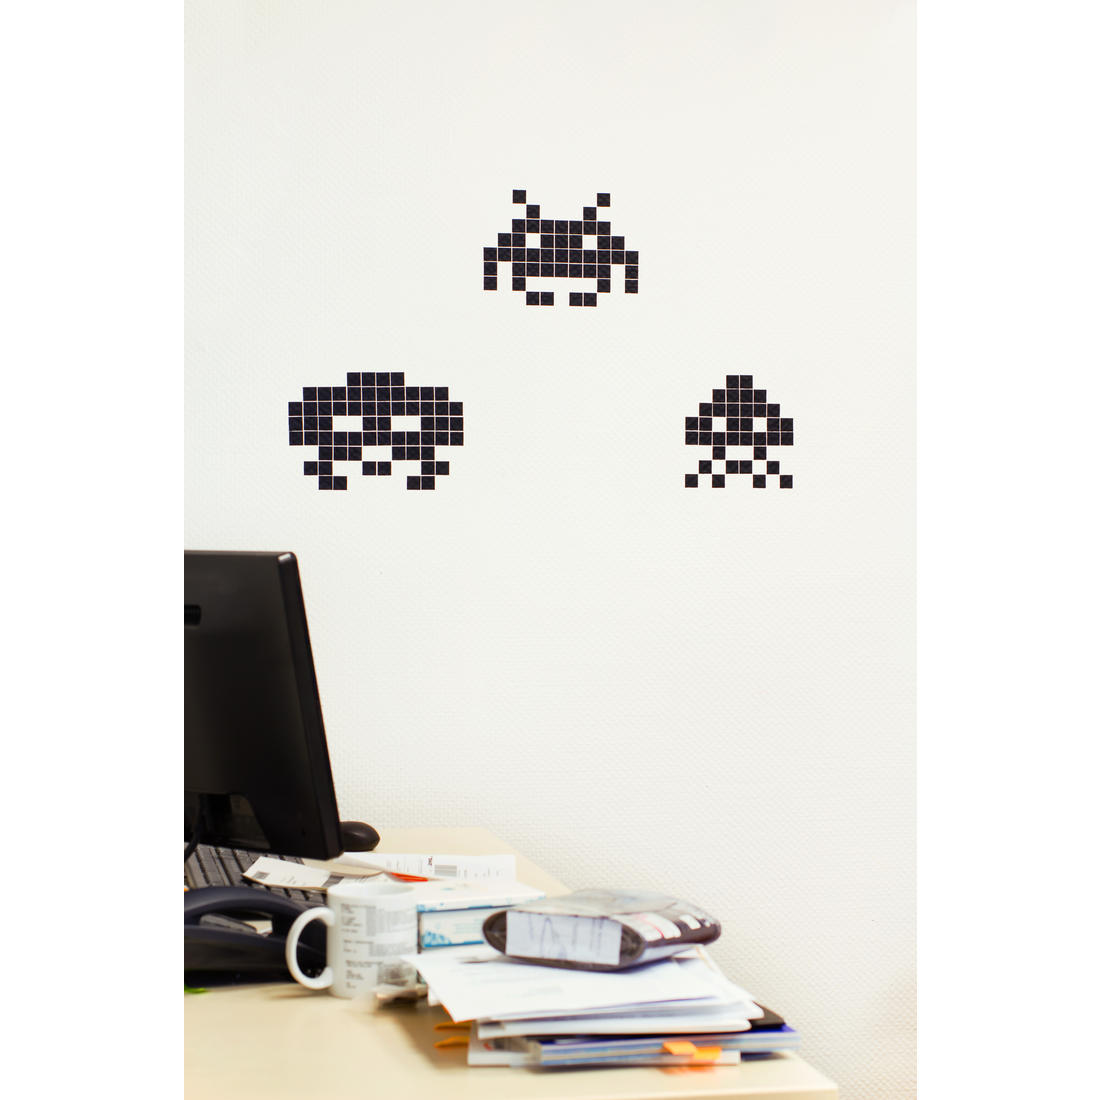 stickaz wall stickers space invaders getdigital space invaders wall decals nerdy with children